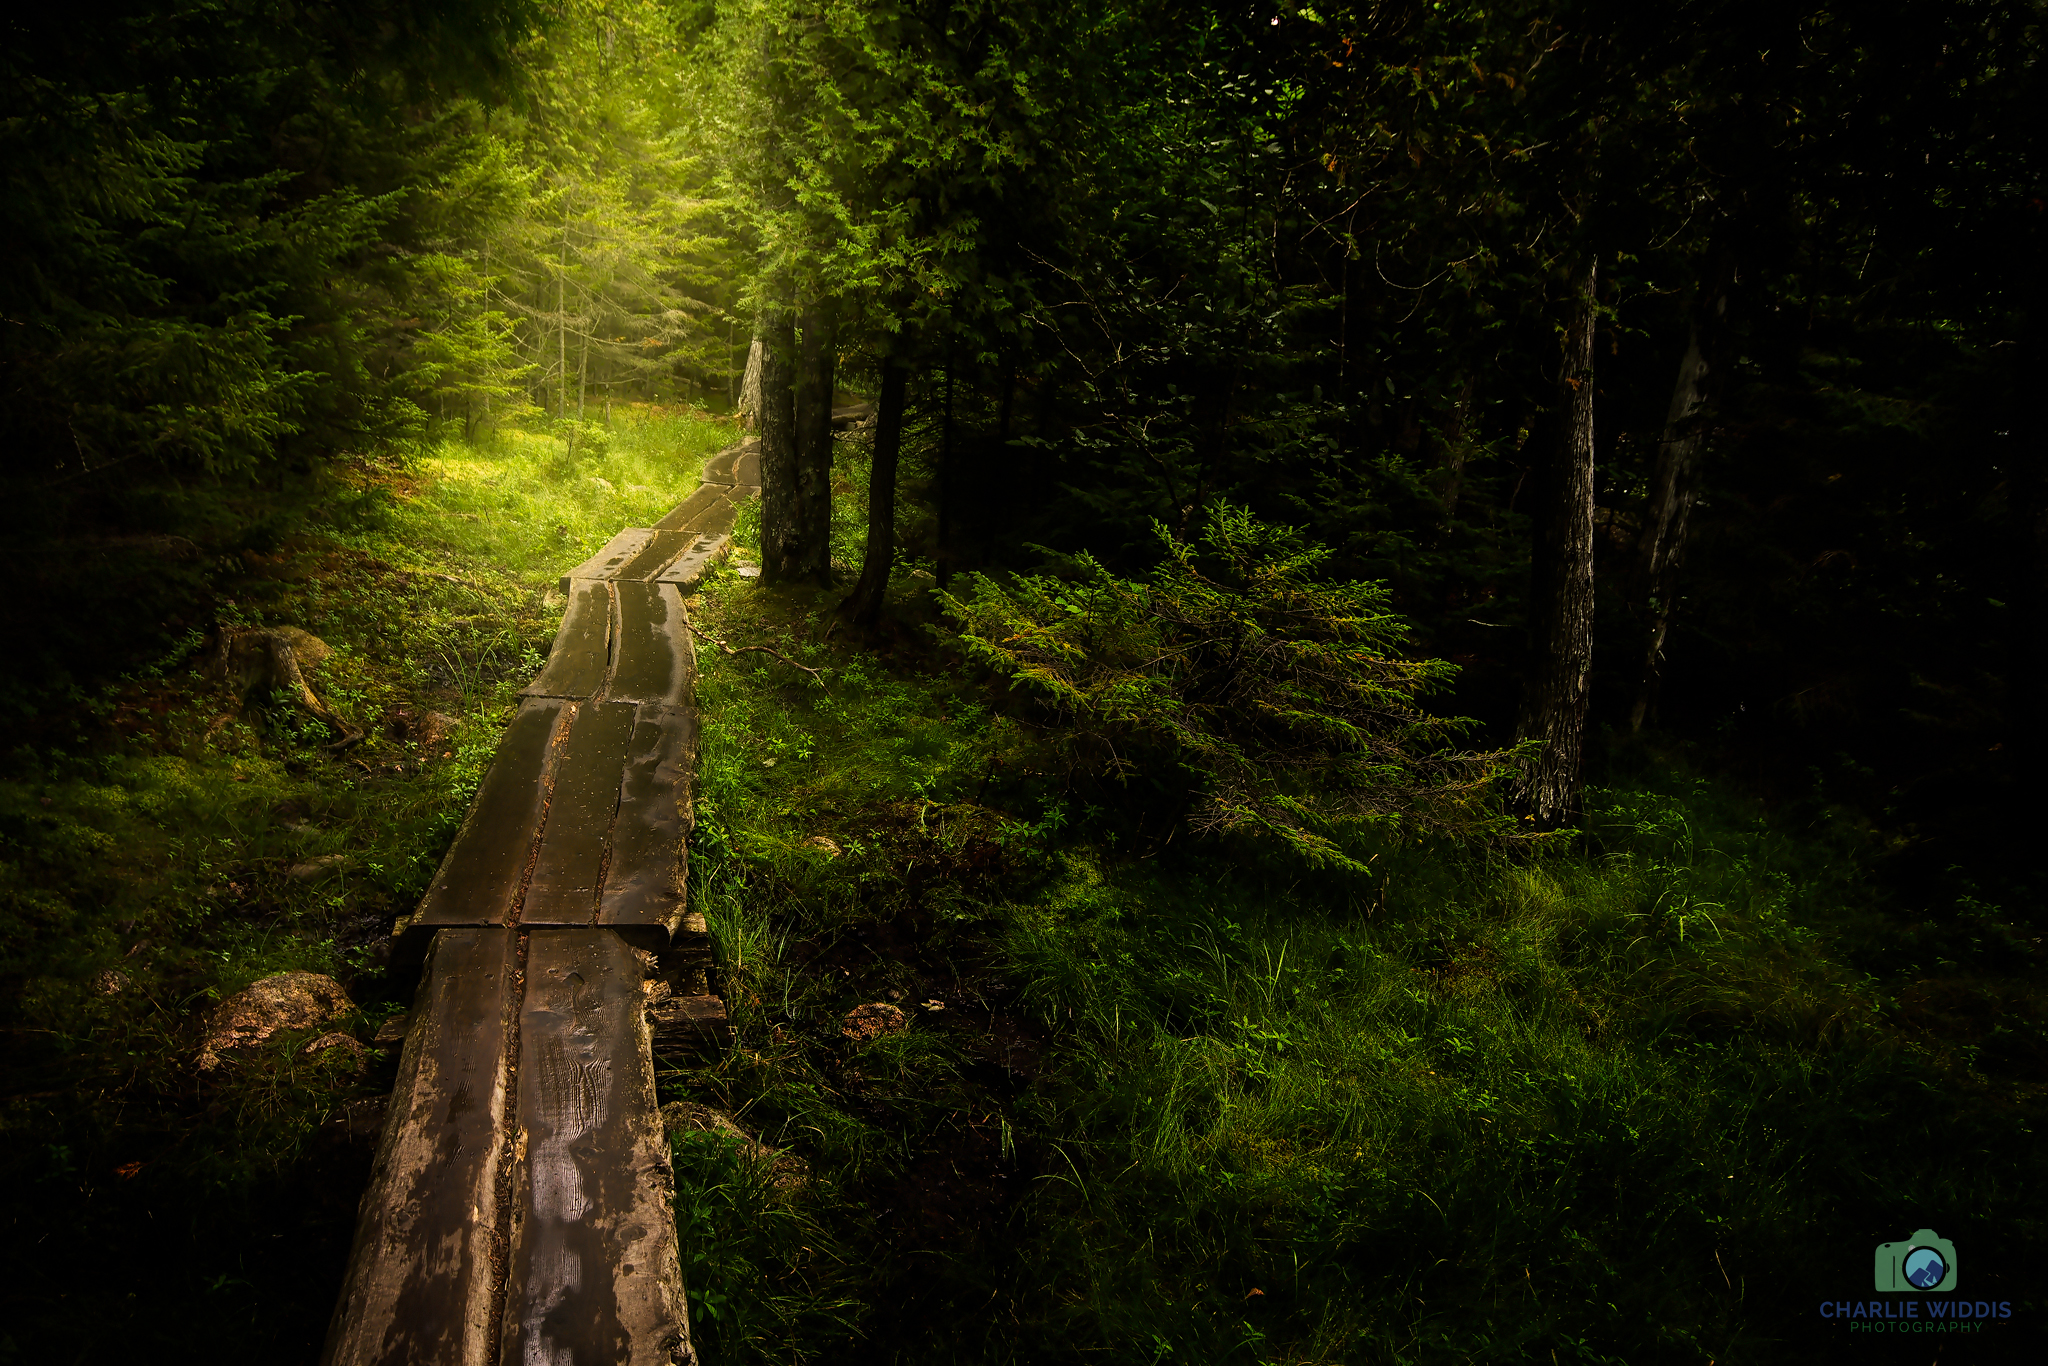 This image I created with depression in mind. Walking through a dark forest with a light at the end of the path.